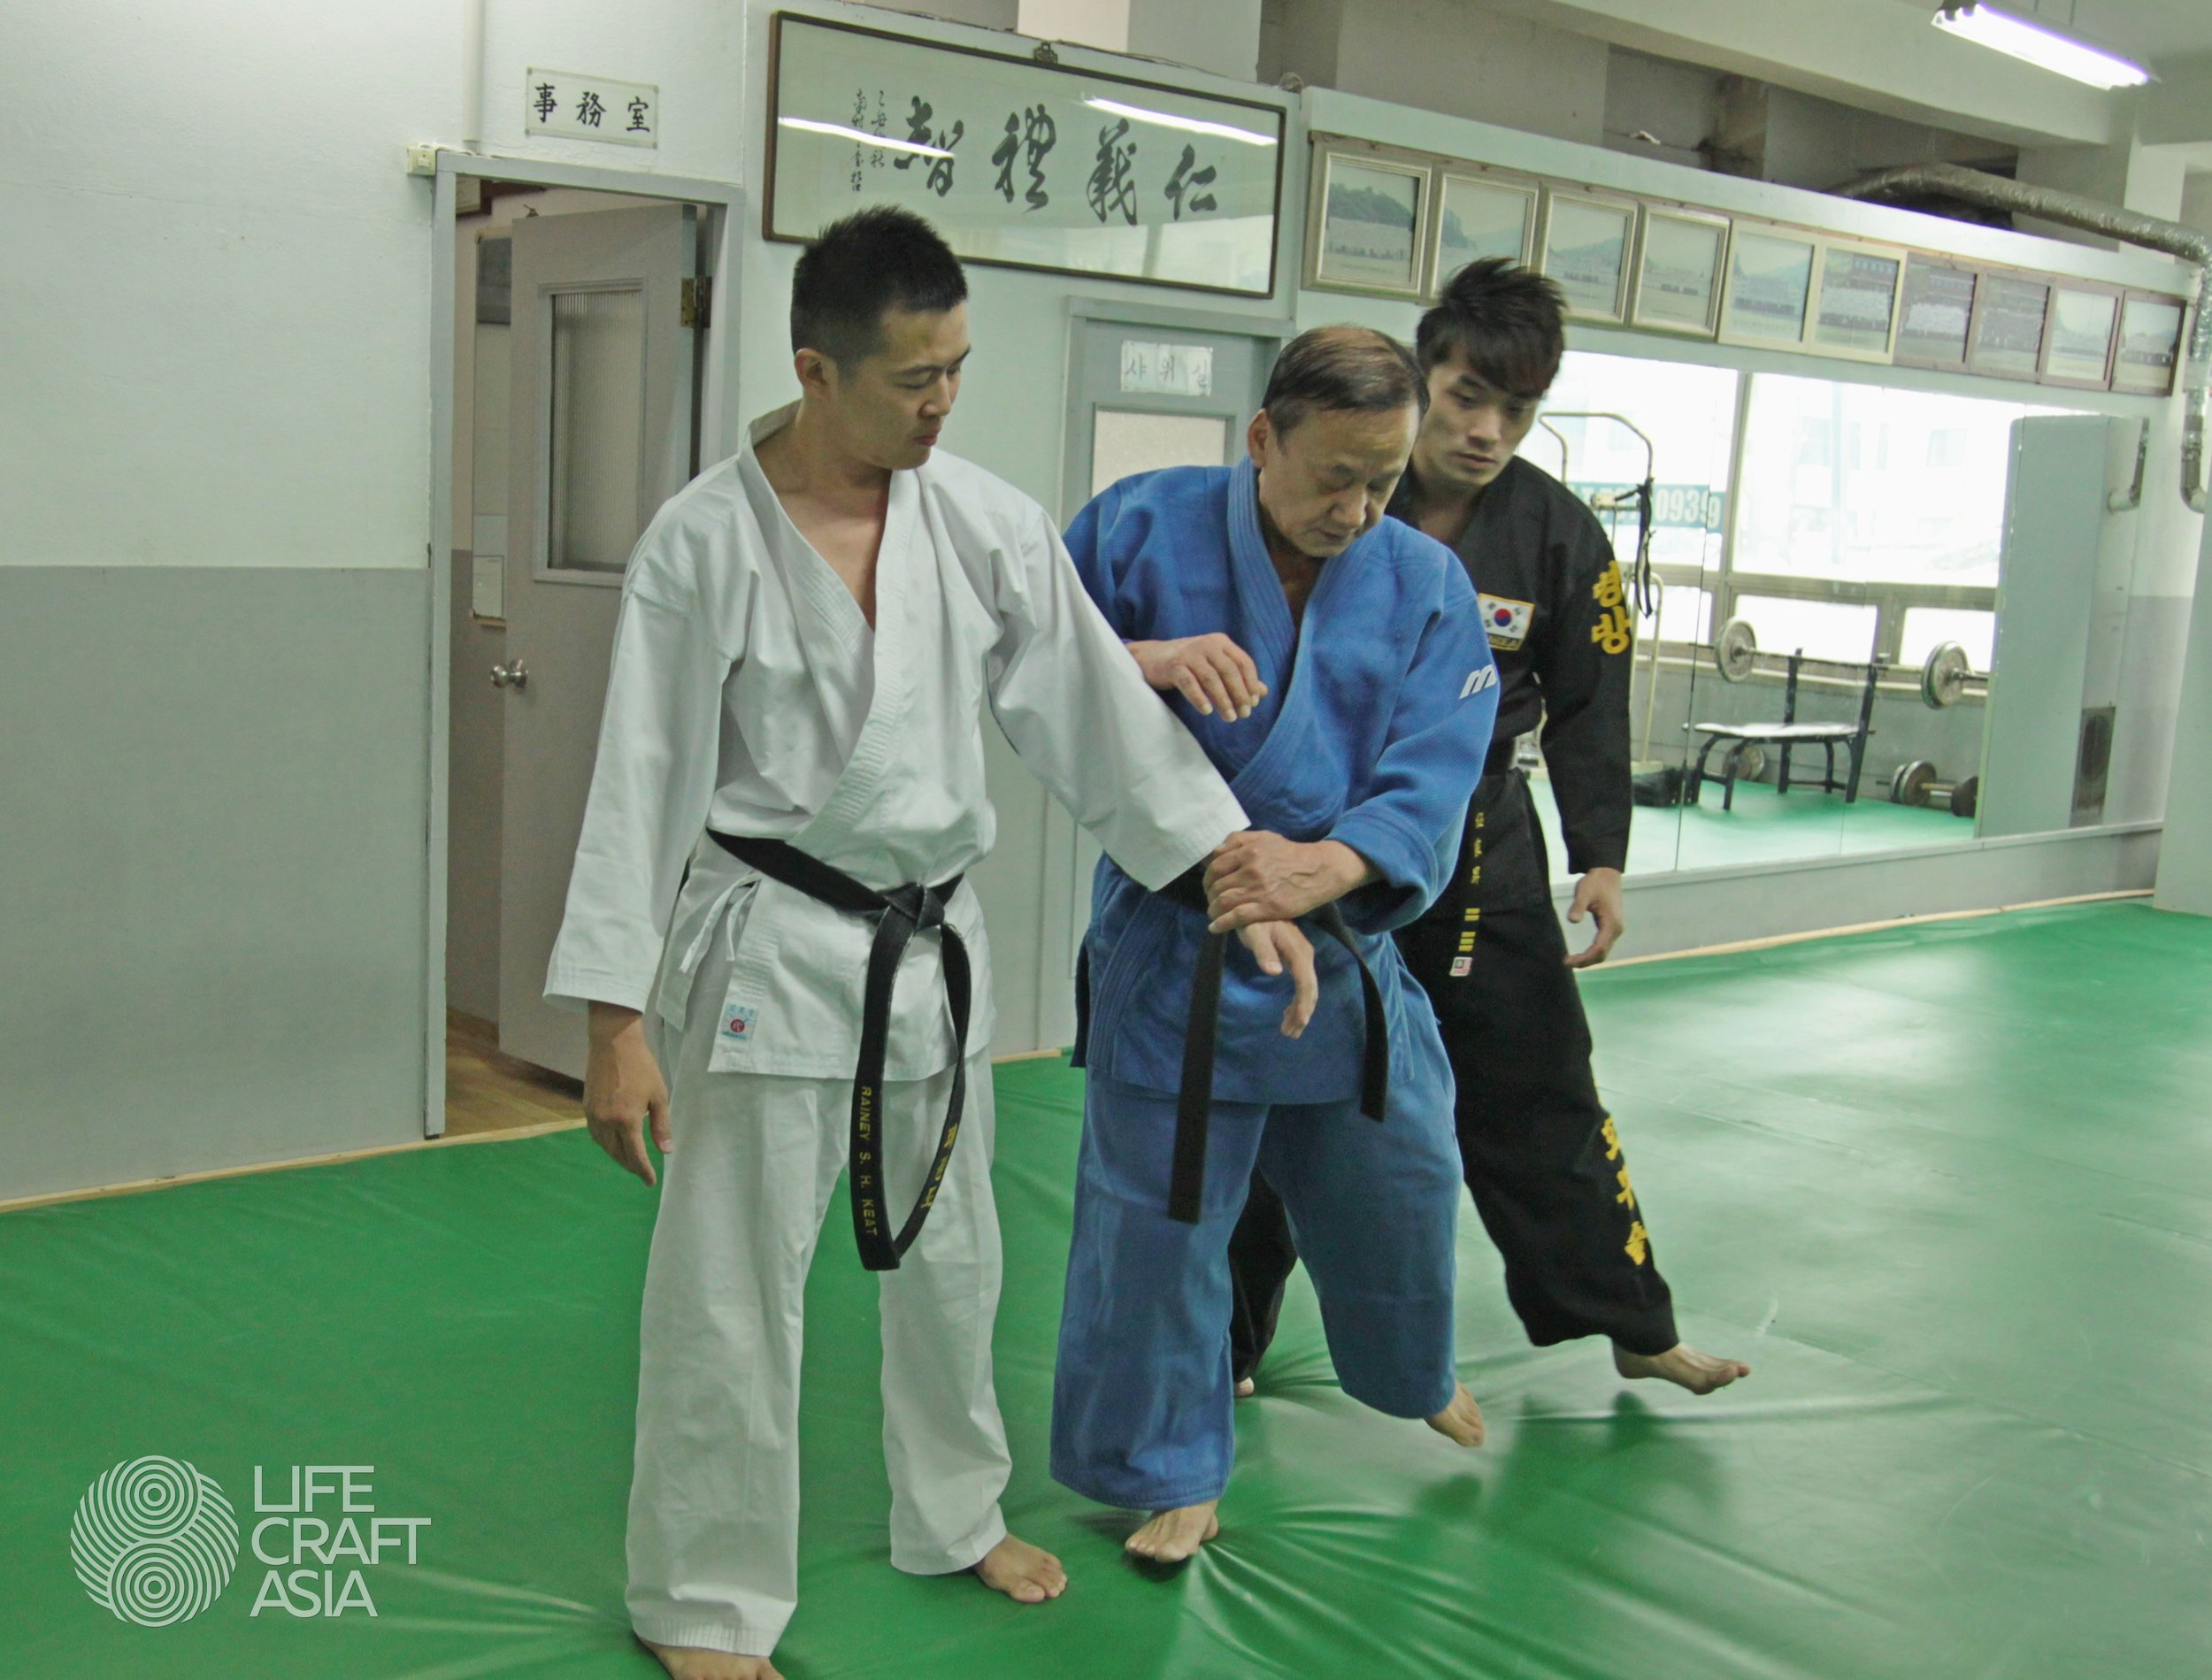 Grand Master Kim demonstrated techniques to the Hapkido practitioners of LifeCraft Asia